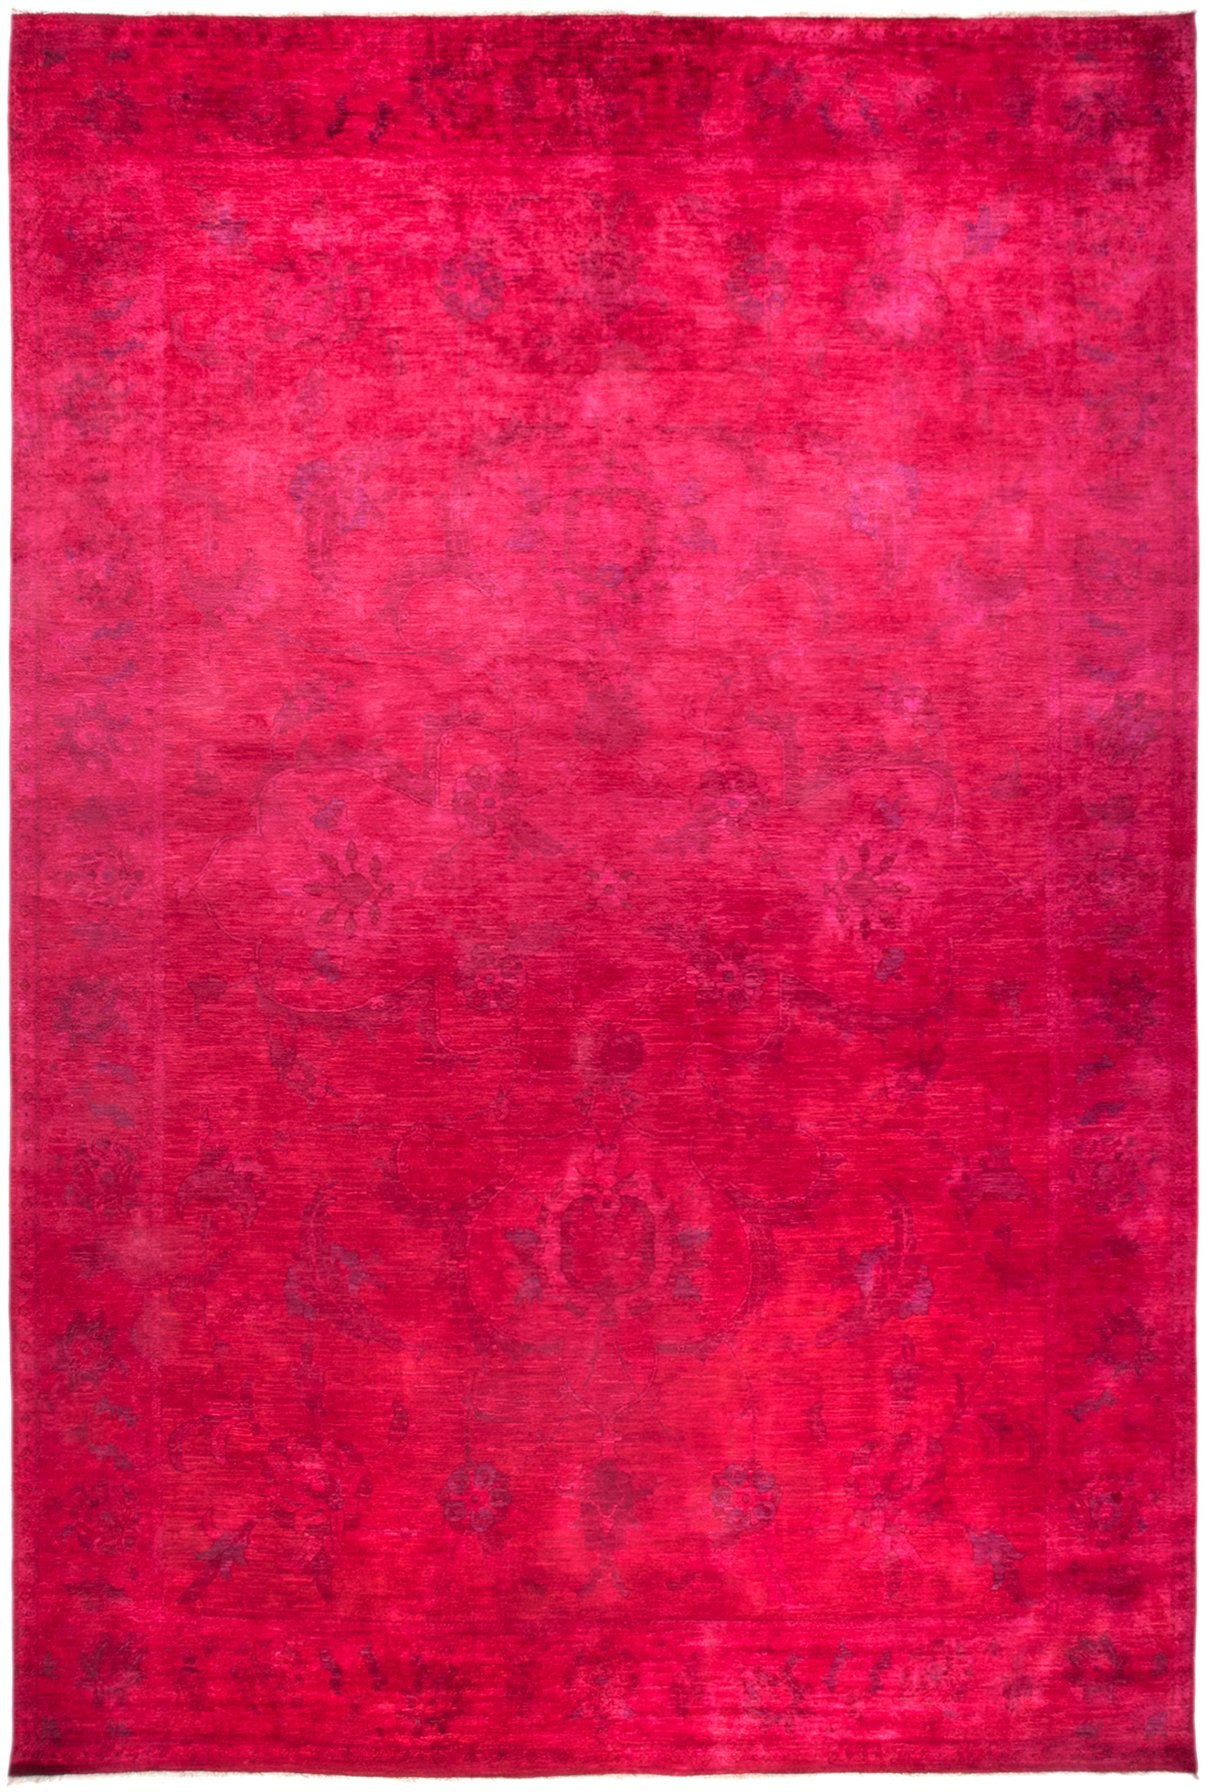 Overdyed Pink Wool Area Rug 11 10 X 17 10 Lillian August